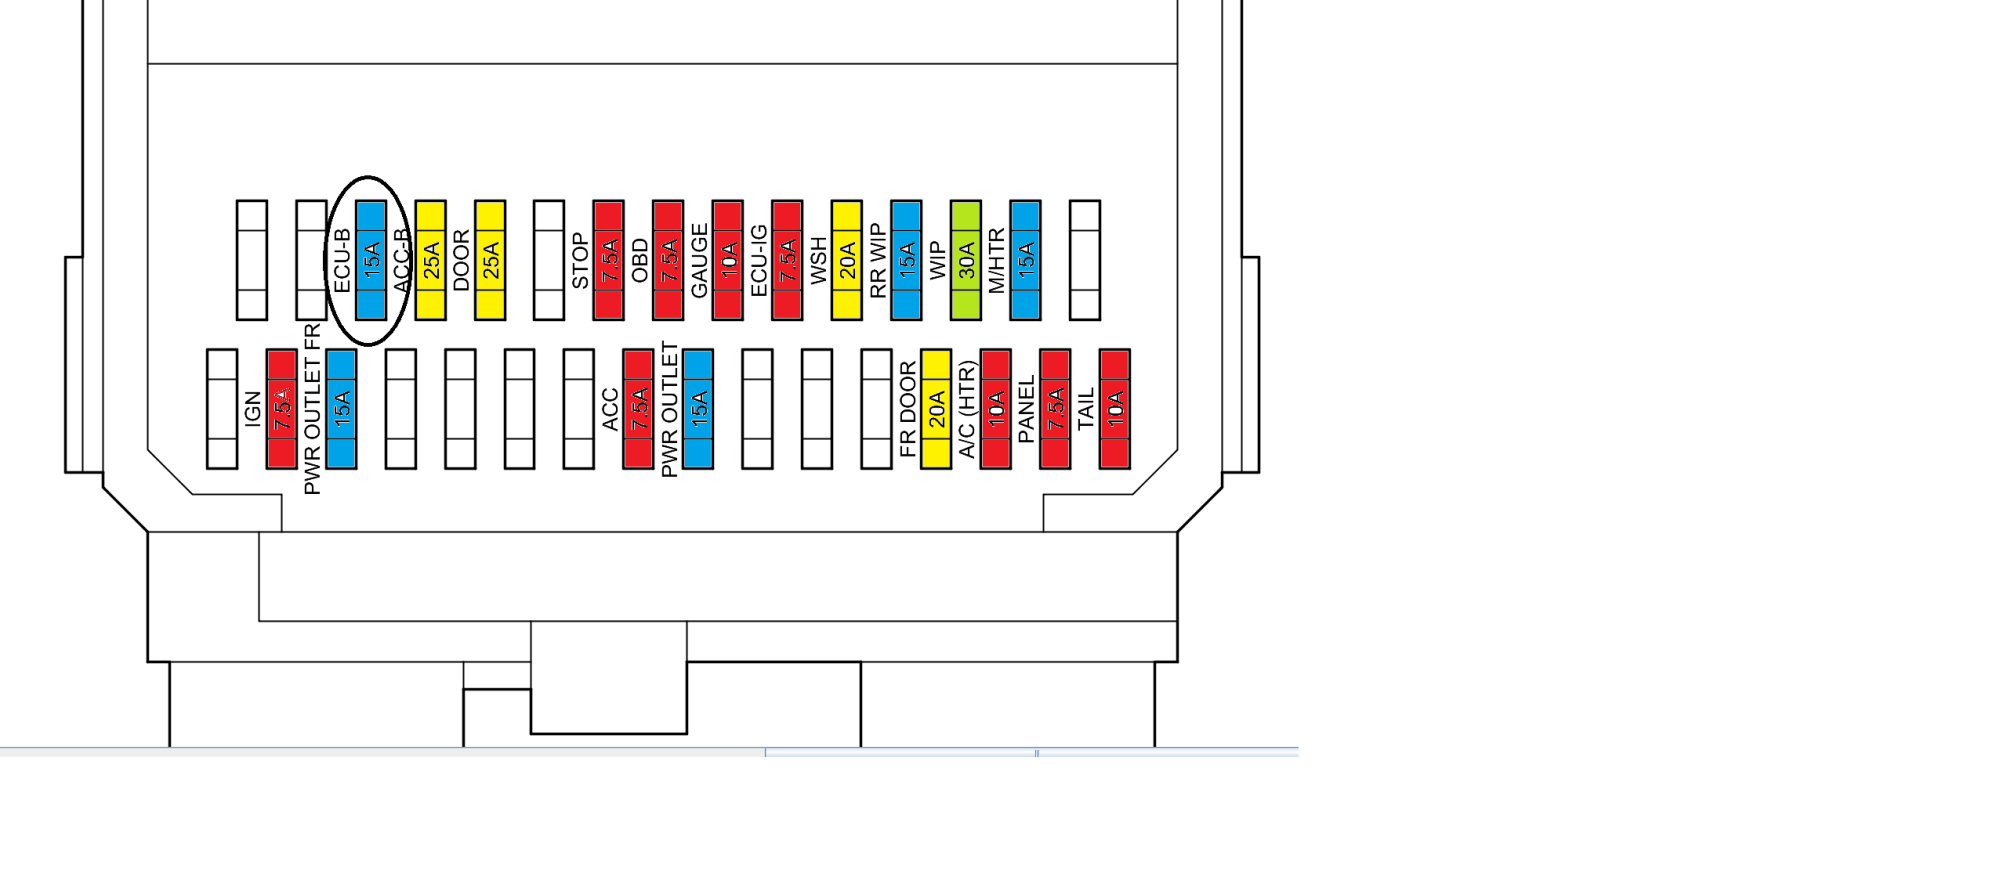 hight resolution of toyota prius fuse box location